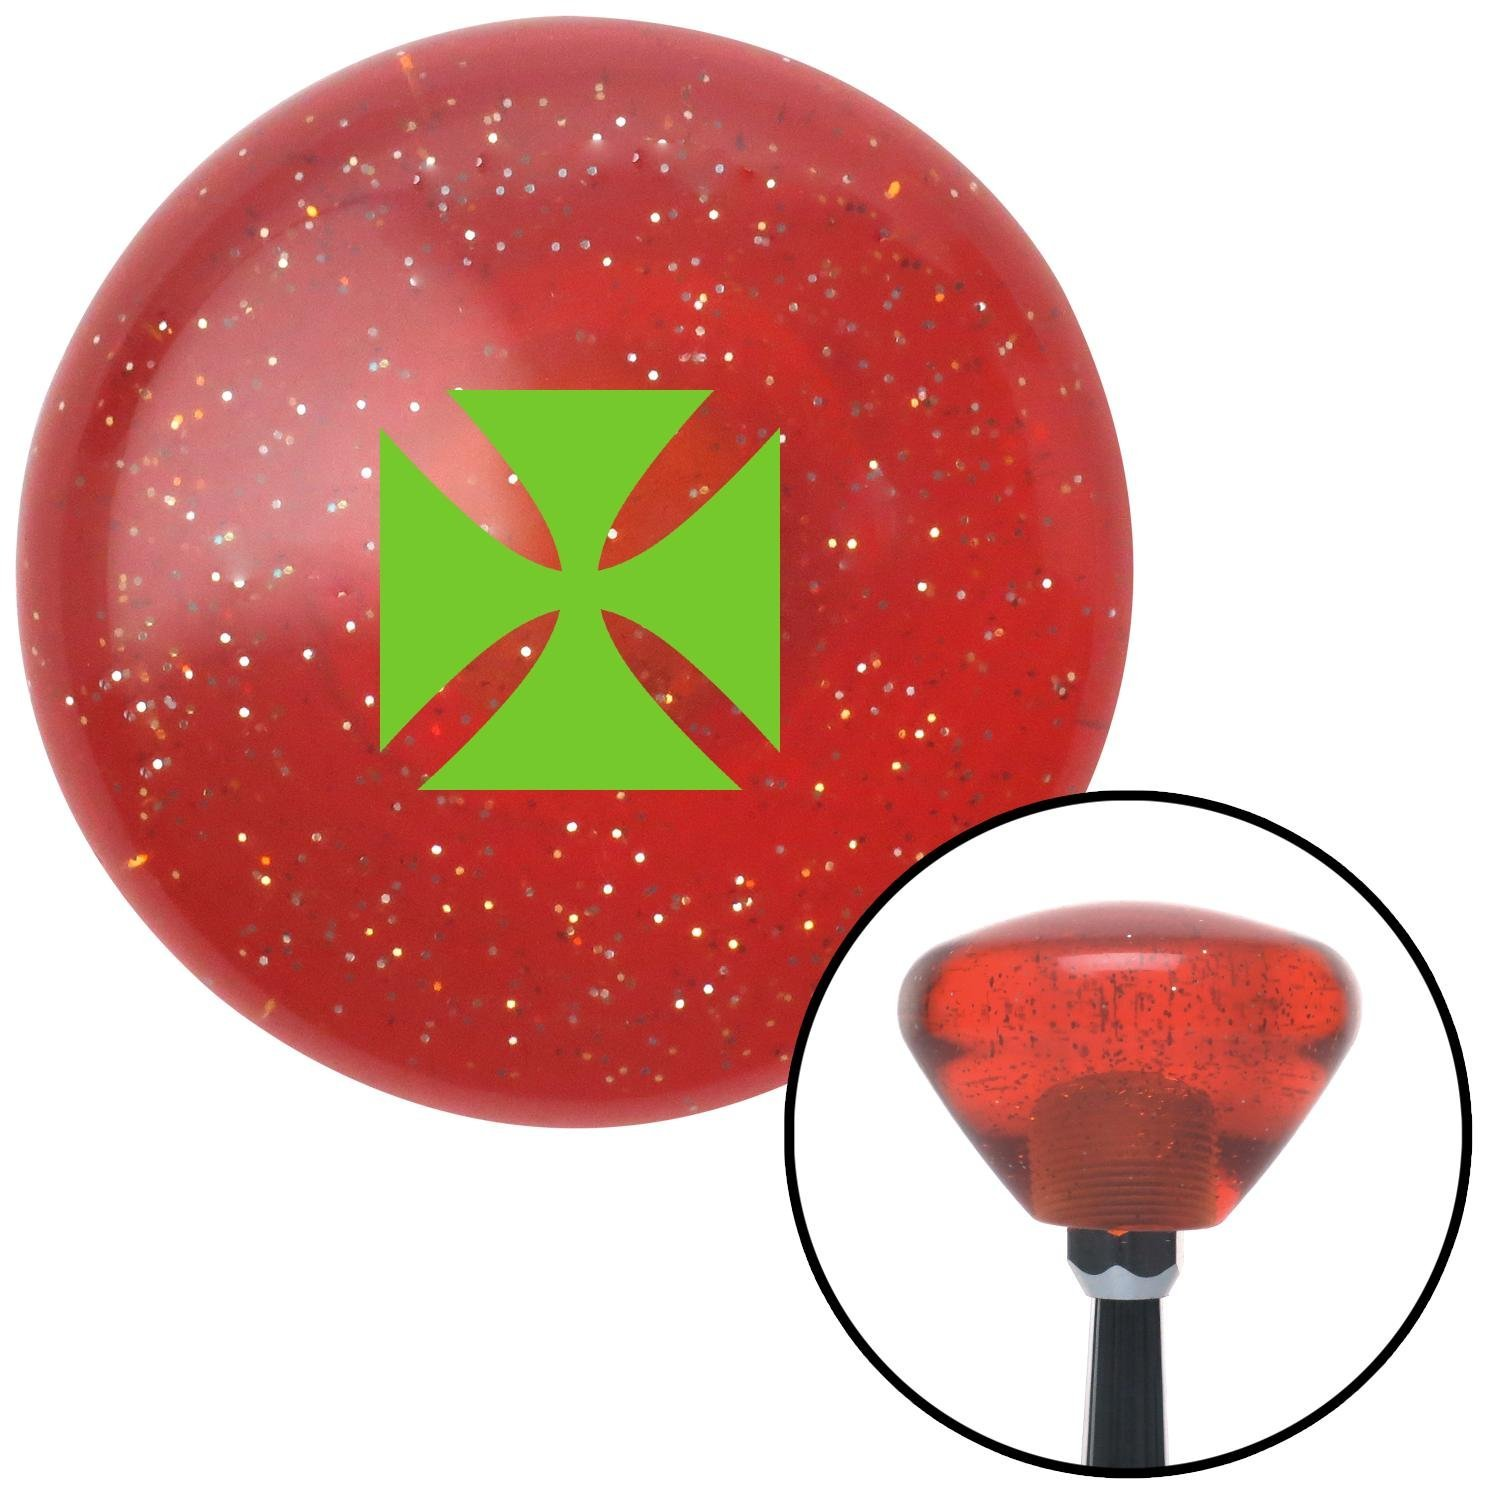 American Shifter 288144 Shift Knob Green Cross Maltese Orange Retro Metal Flake with M16 x 1.5 Insert